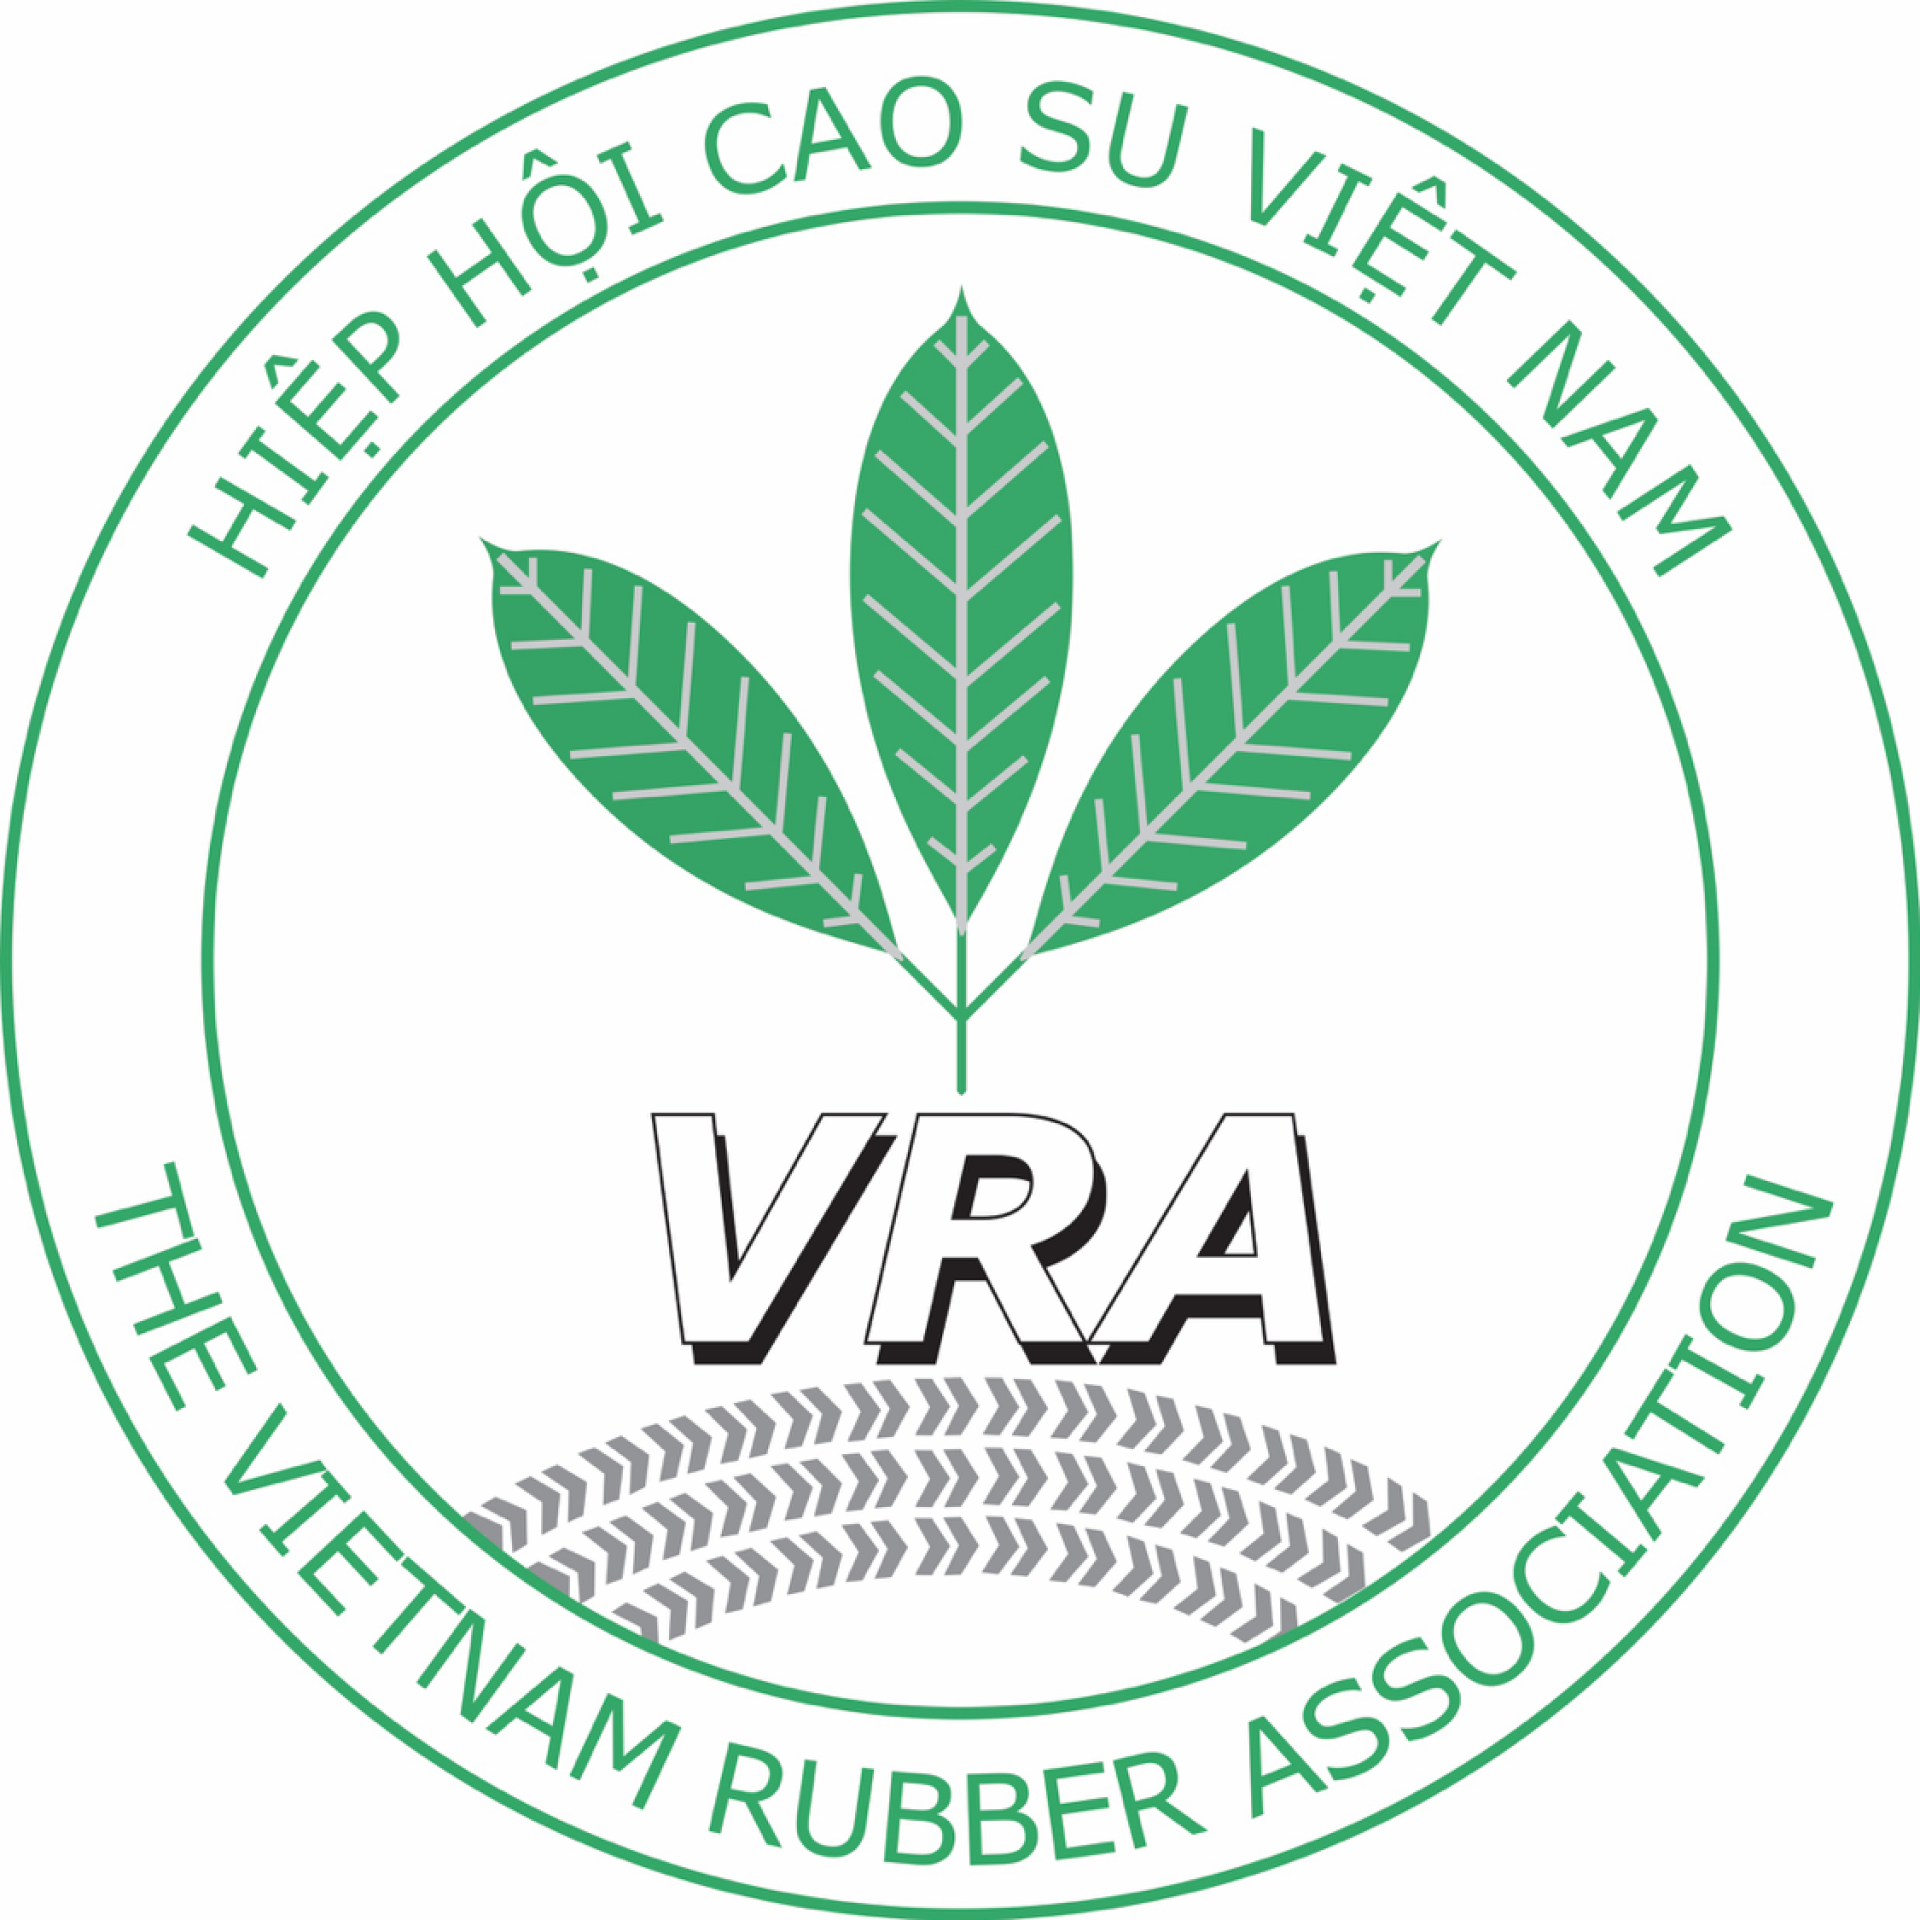 The Vietnam Rubber Association